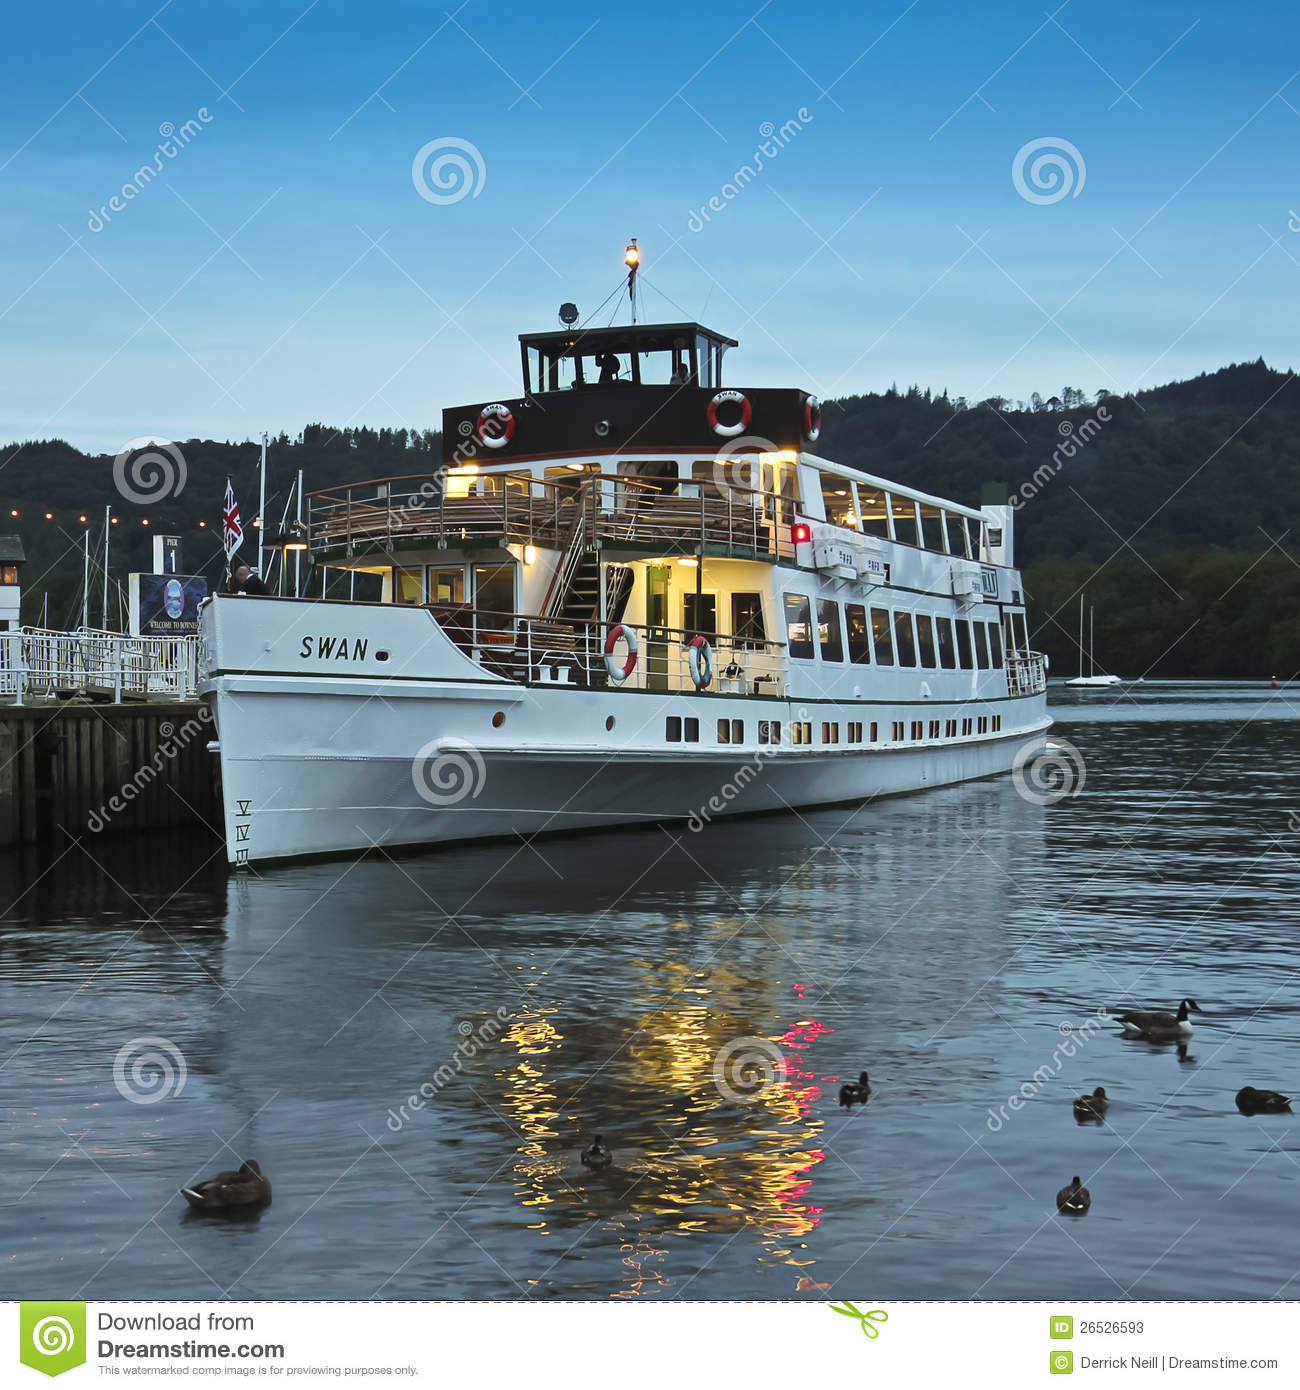 A Night Swan Shot In Bowness-on-Windermere Editorial Stock